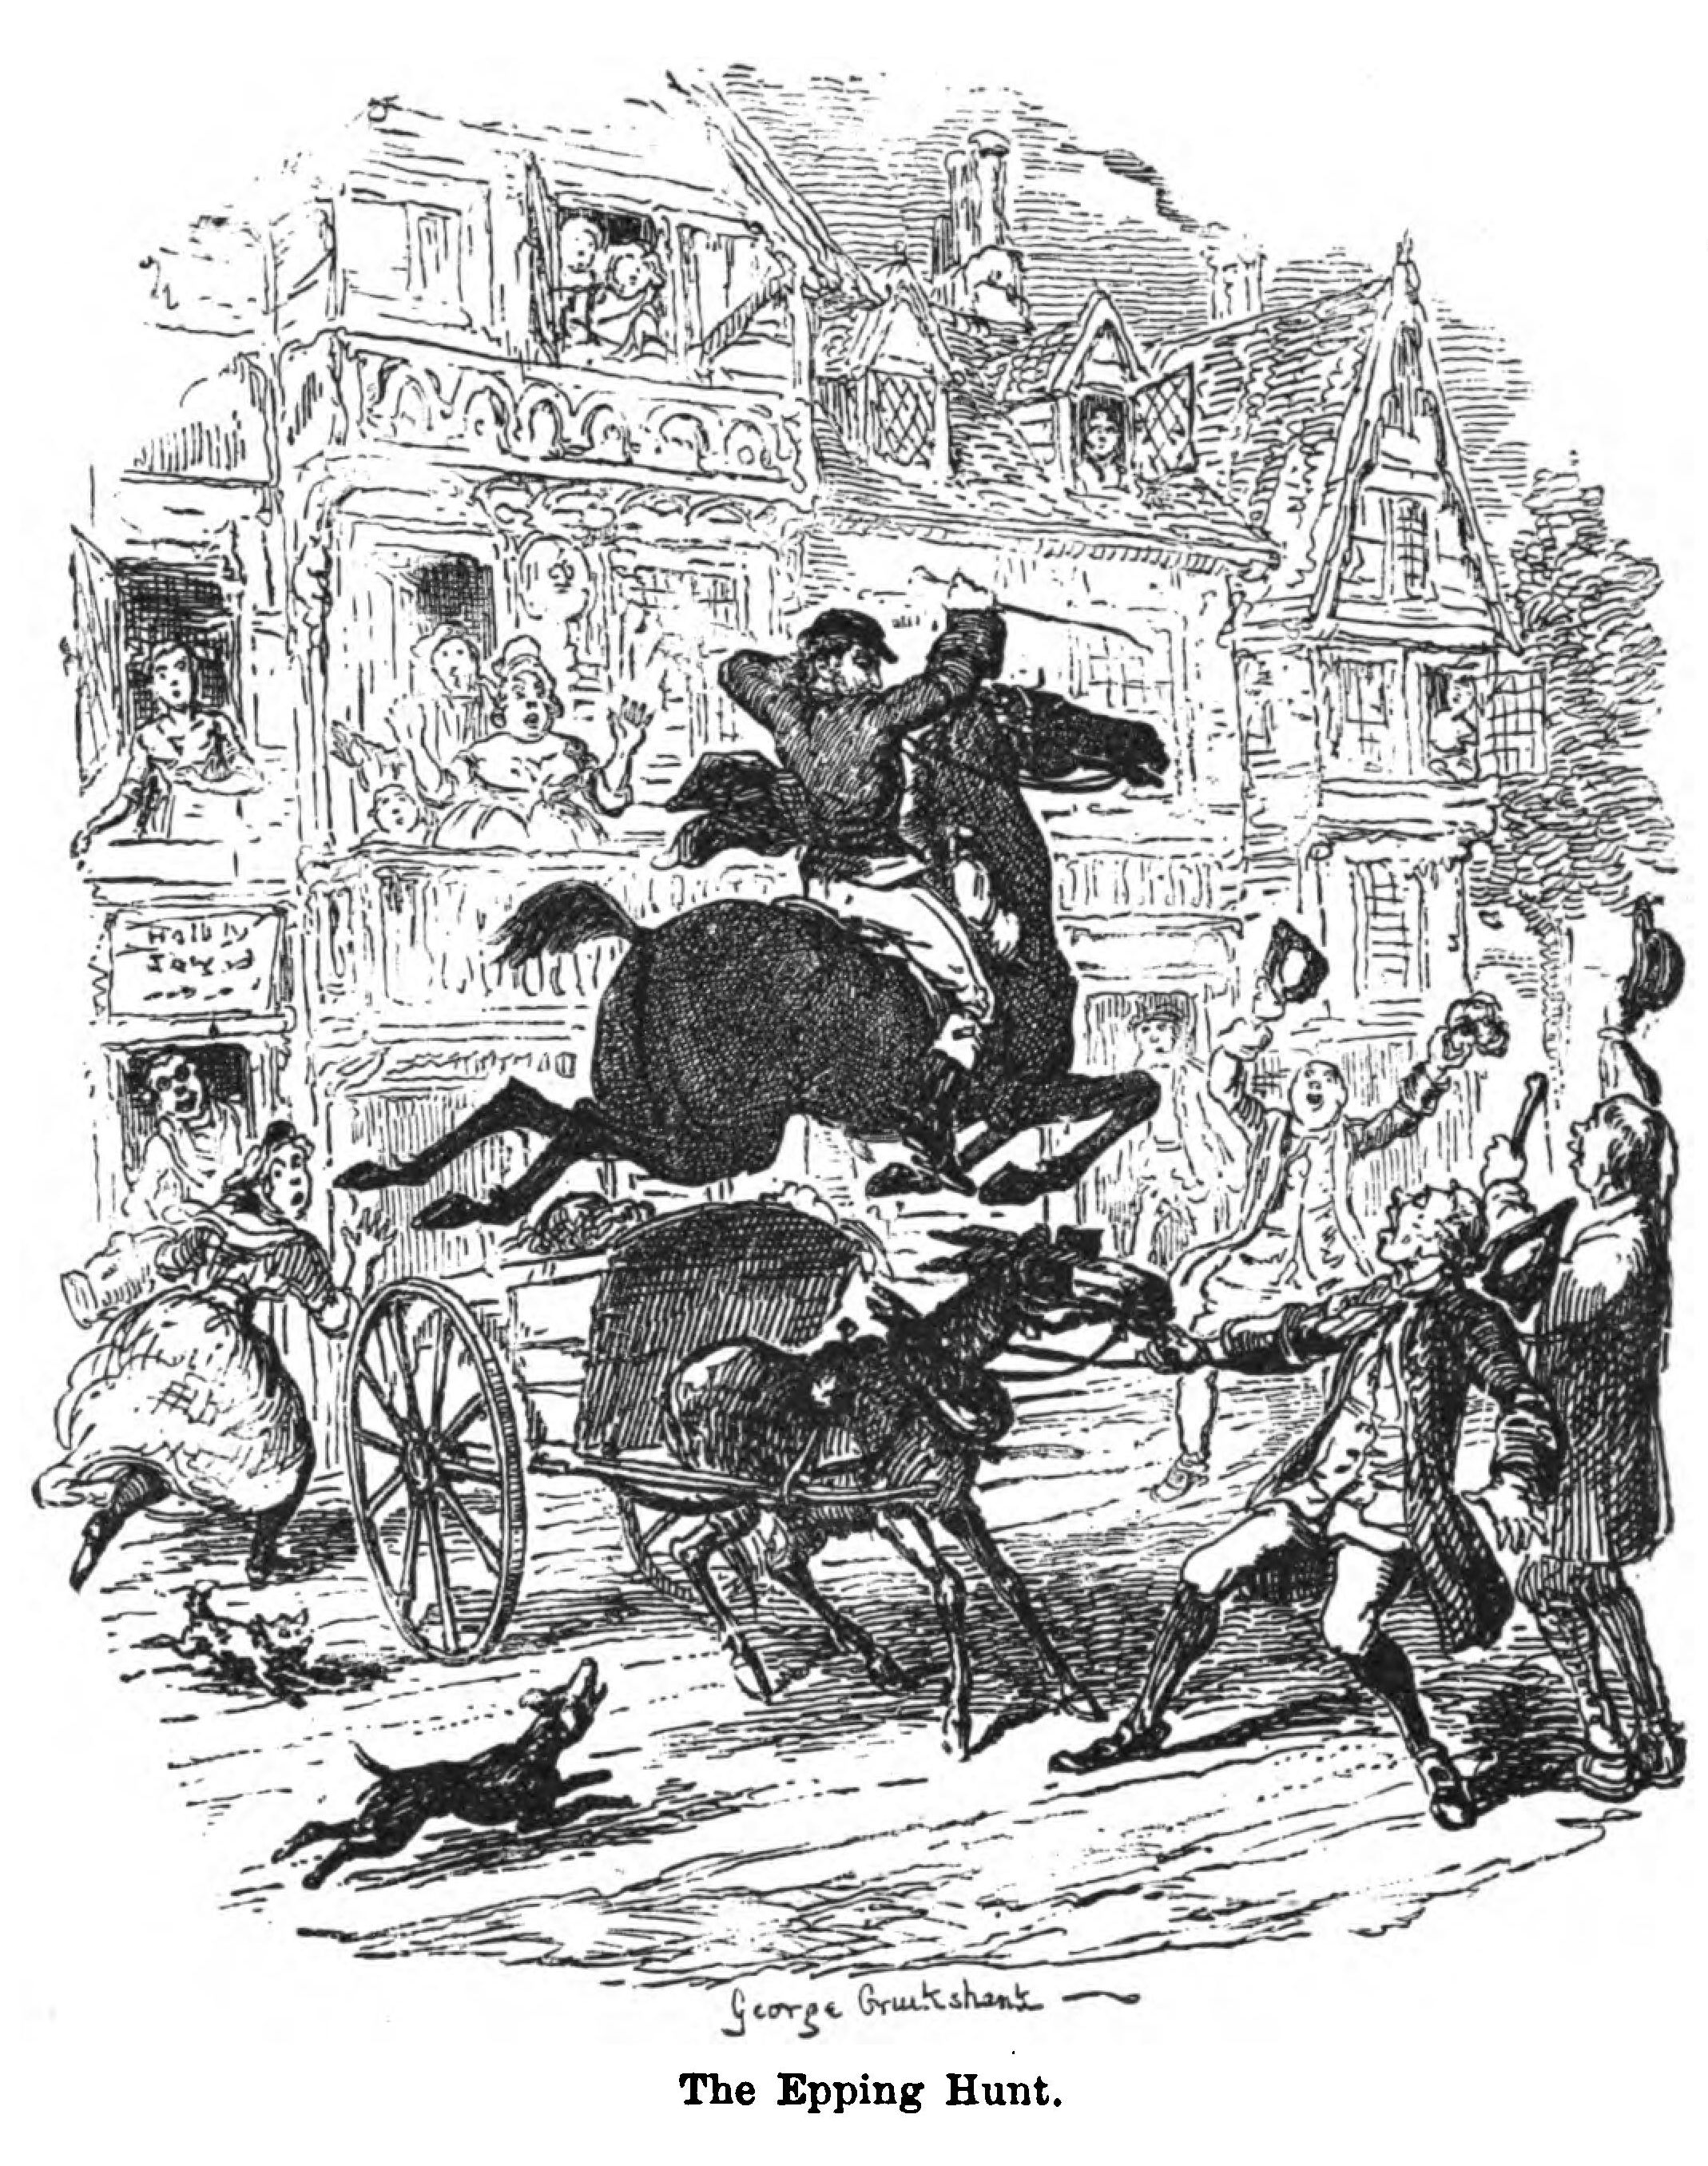 The Life of George Cruikshank,, by Blanchard Jerrold